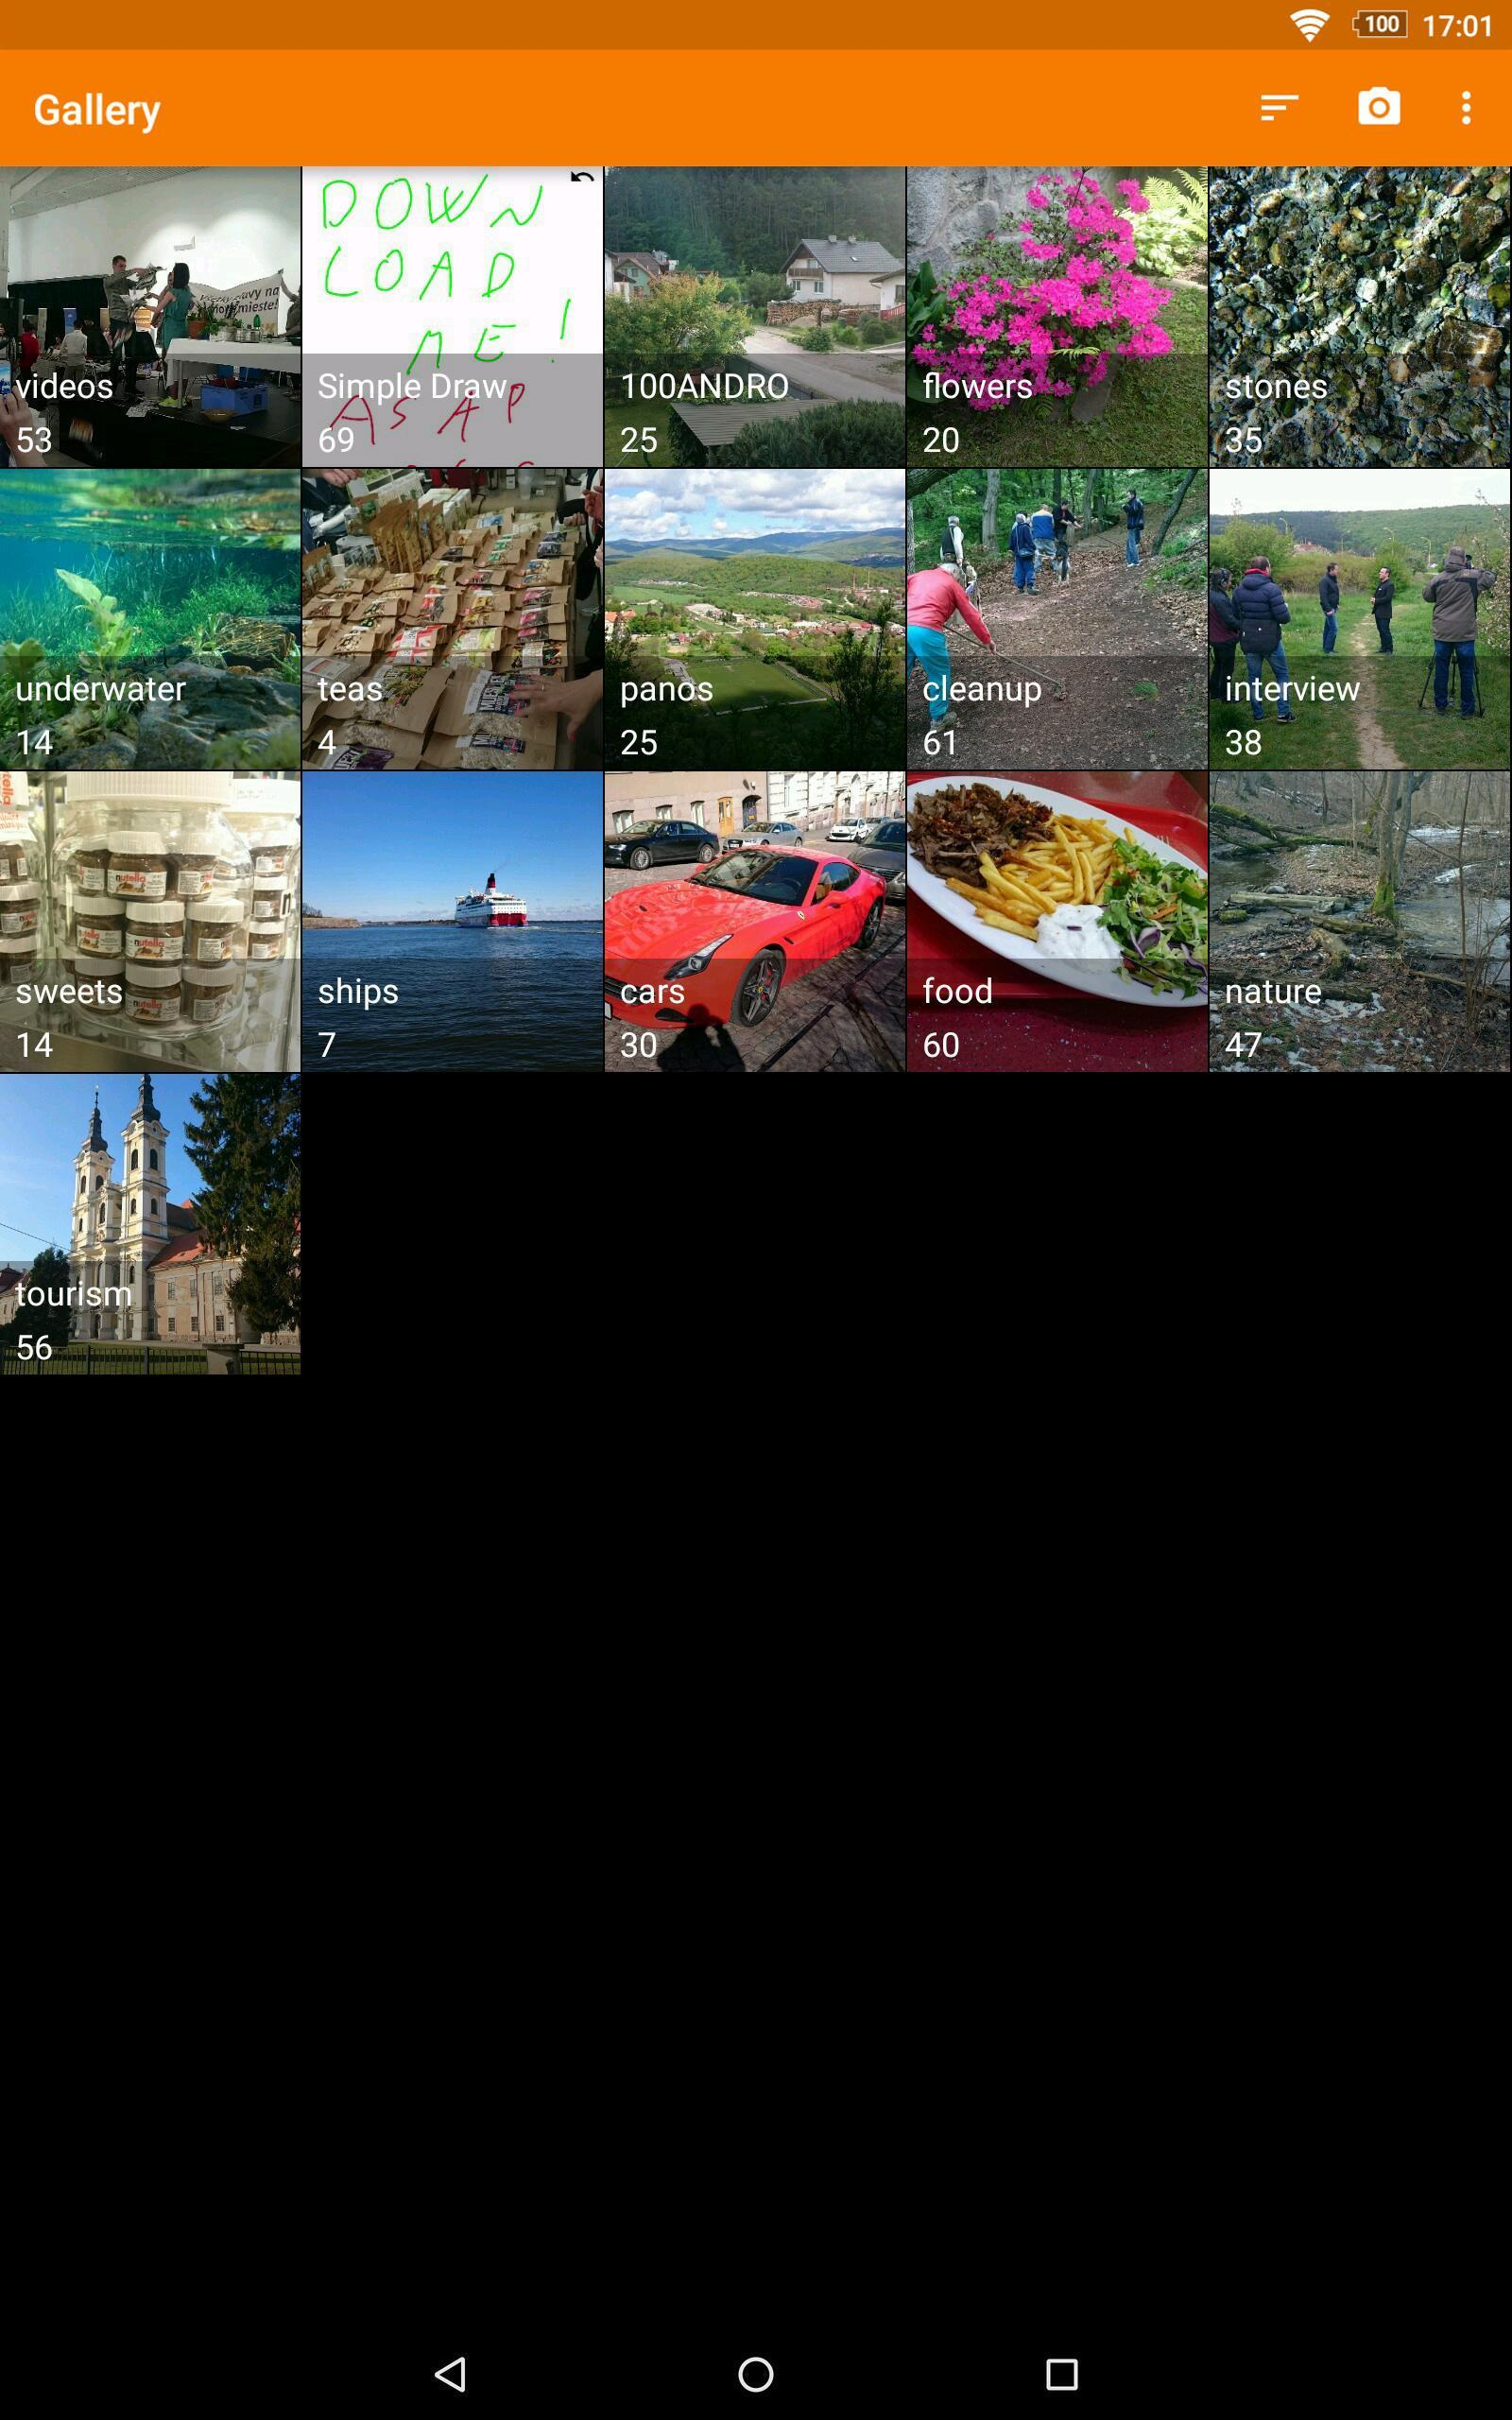 Simple Gallery for Android - APK Download